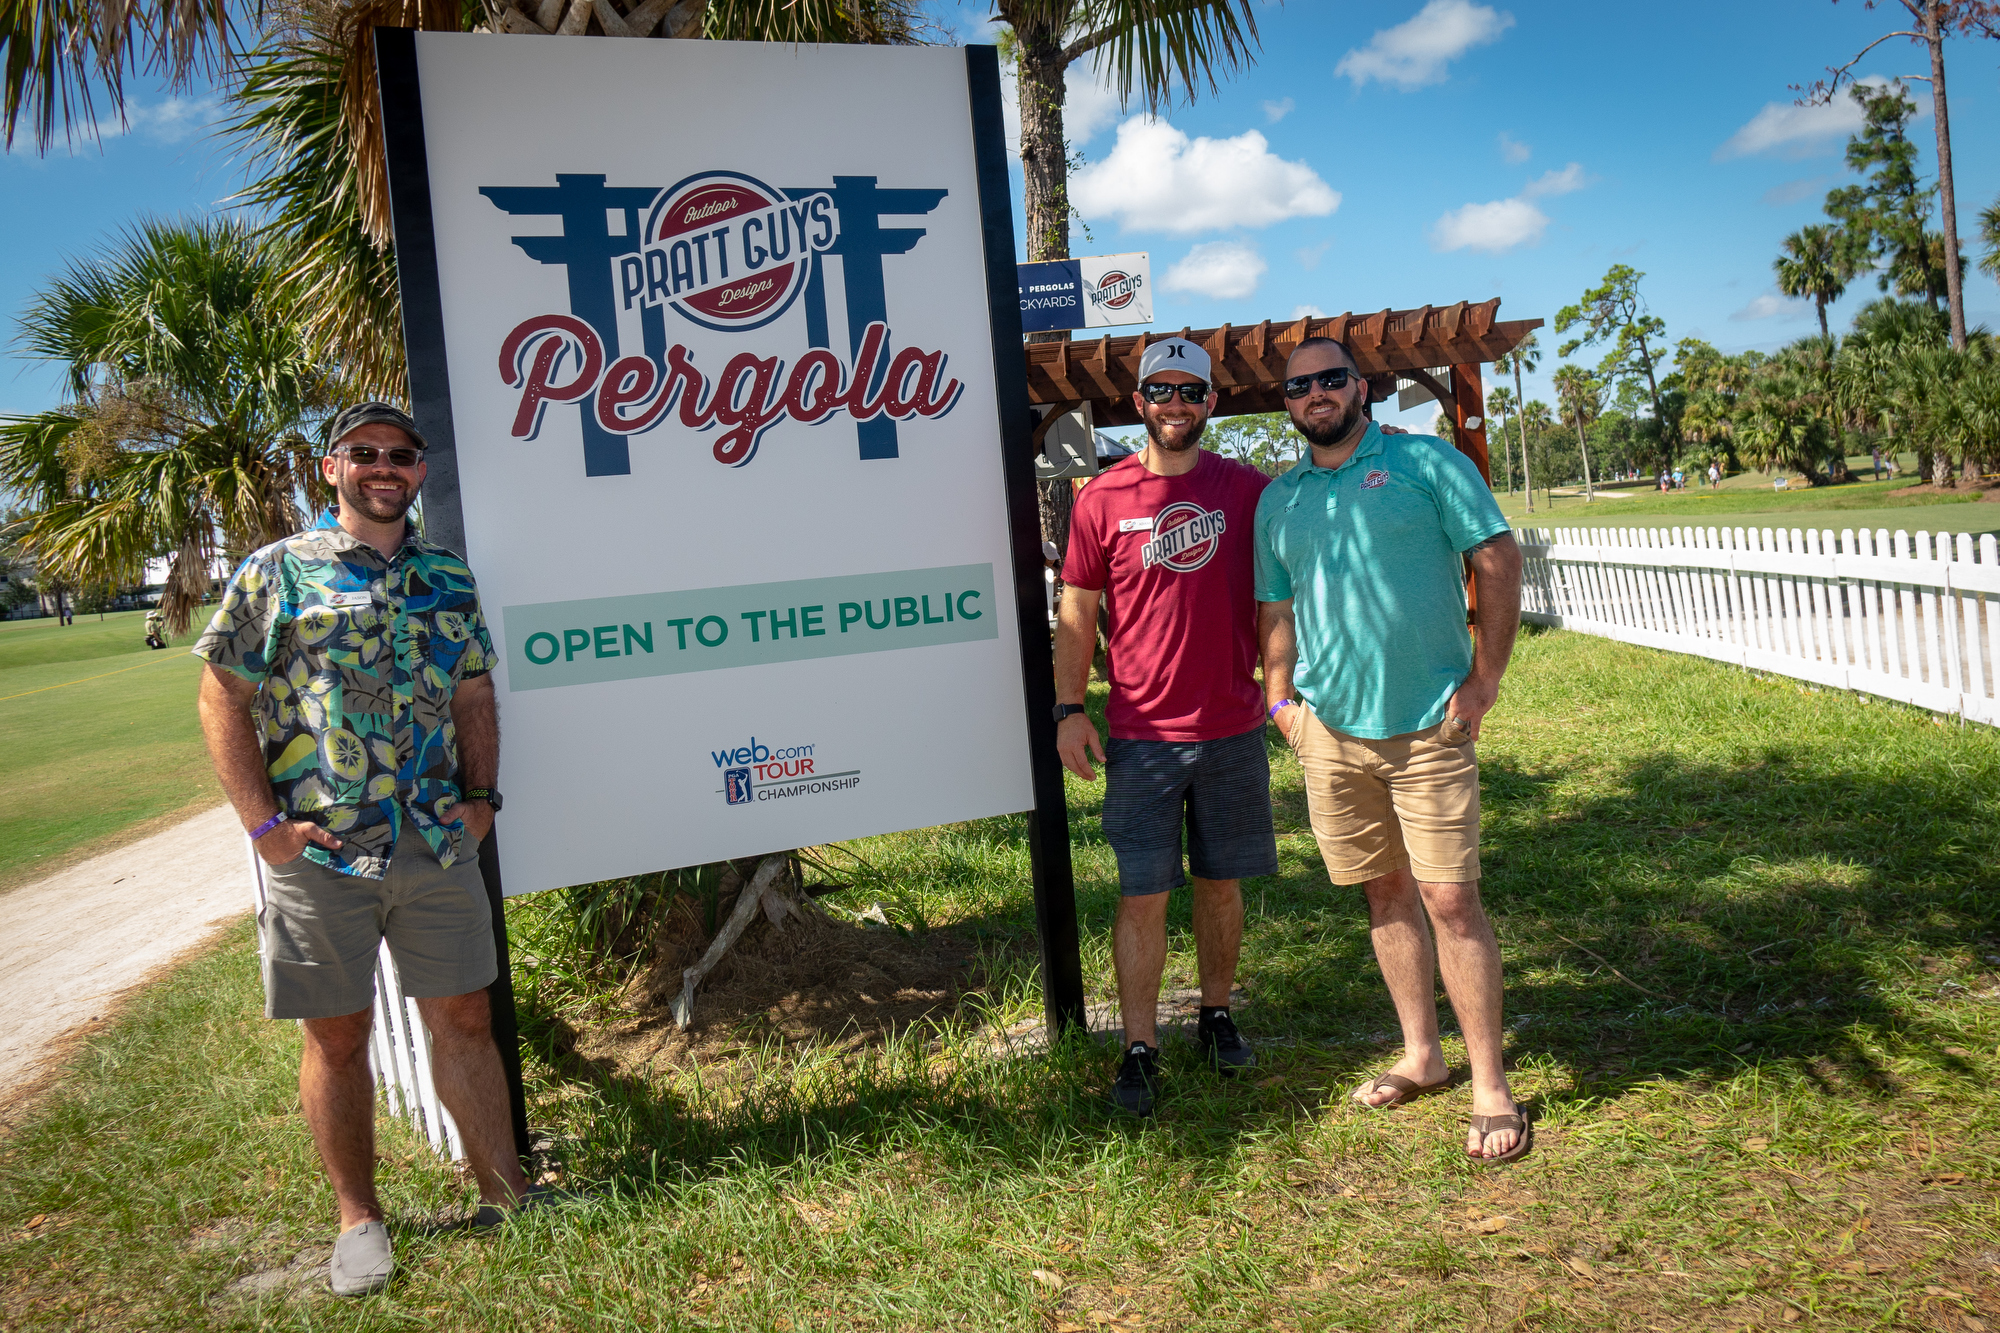 A scene from the Web.com Tour Championship, held at the Atlantic Beach Country Club September 20-23, 2018 - Photo owned by Pratt Guys - NOTE: Can ONLY be used online, digitally, TV and print WITH written permission from Pratt Guys. (PrattGuys.com)